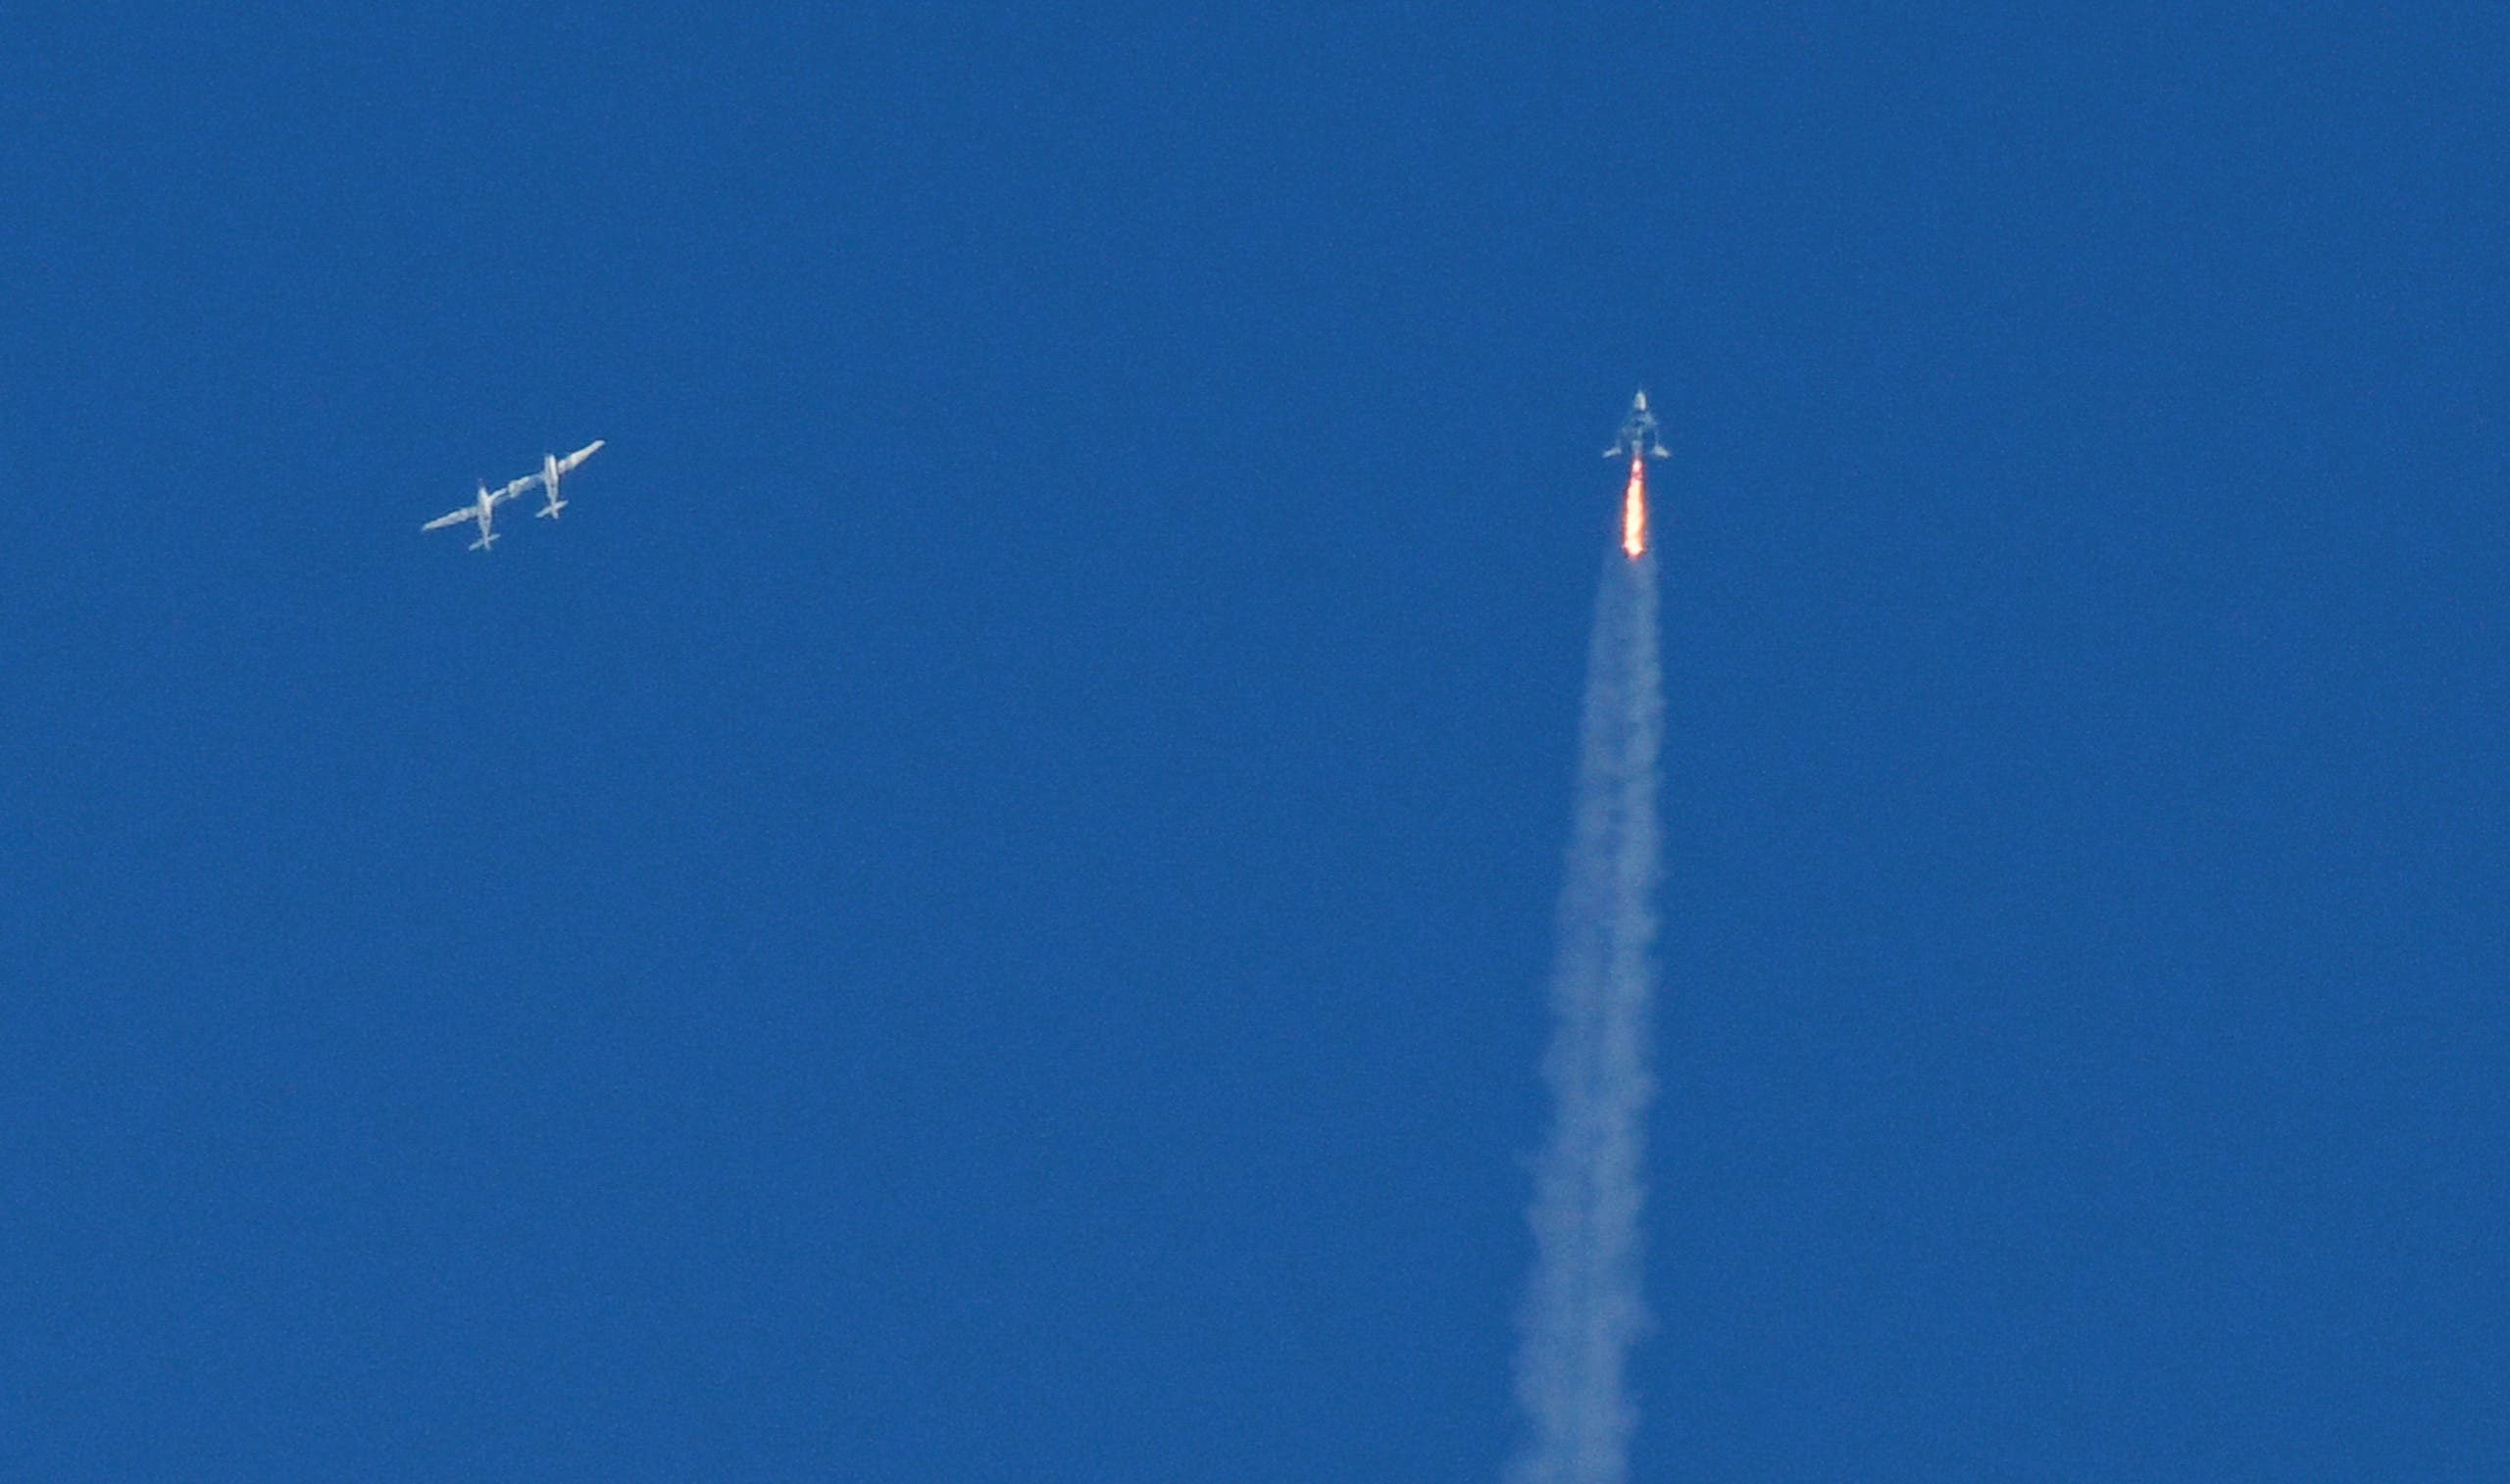 The SpaceShipTwo VSS Unity passenger craft (R) is seen after separation from Virgin Galactic rocket plane, the WhiteKnightTwo carrier airplane (L), upon taking off from Mojave Air and Space Port in Mojave, California, US, February 22, 2019. (Reuters)